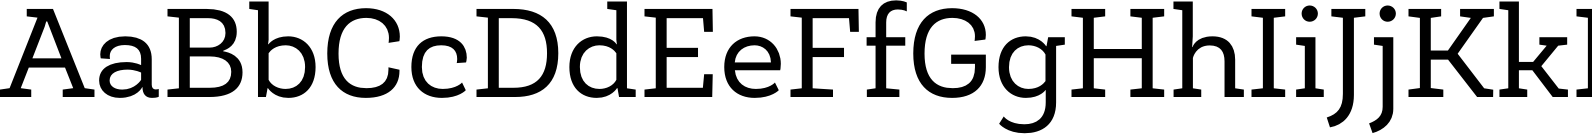 Roble Font